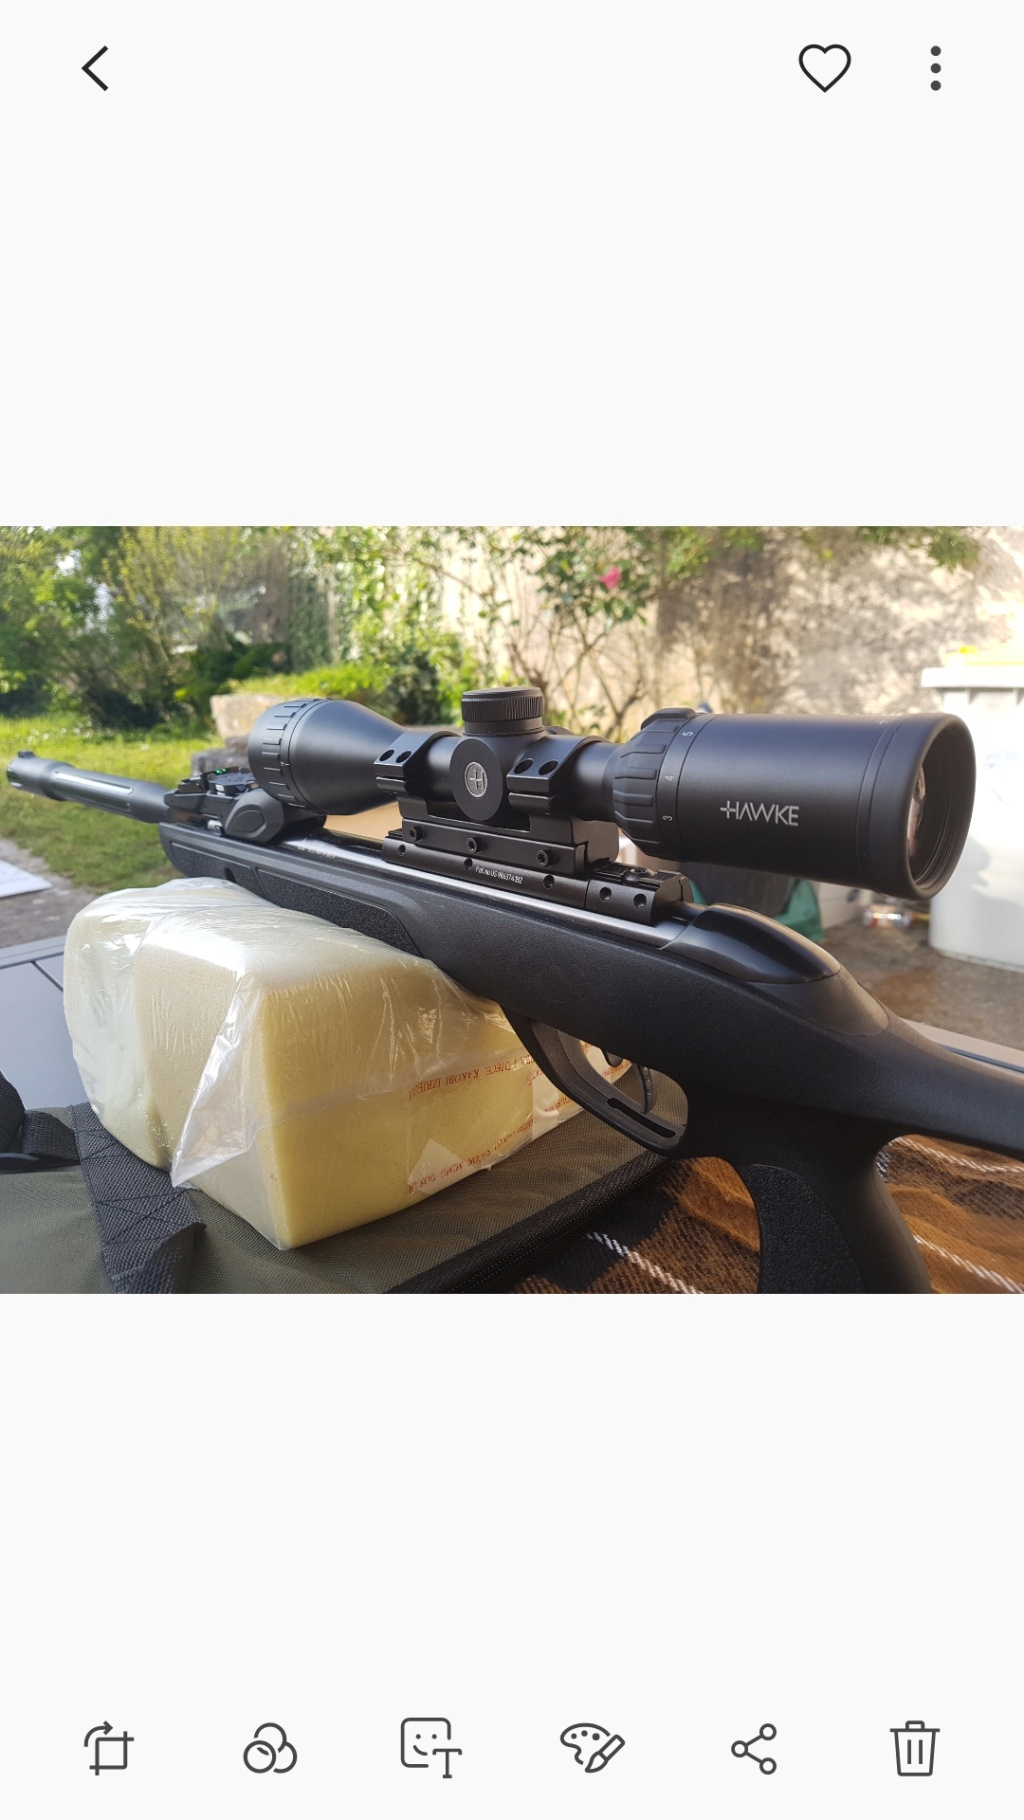 REVIEW Gamo Roadster igt 10x gen2 (4.5-20joules) - Page 3 Screen18